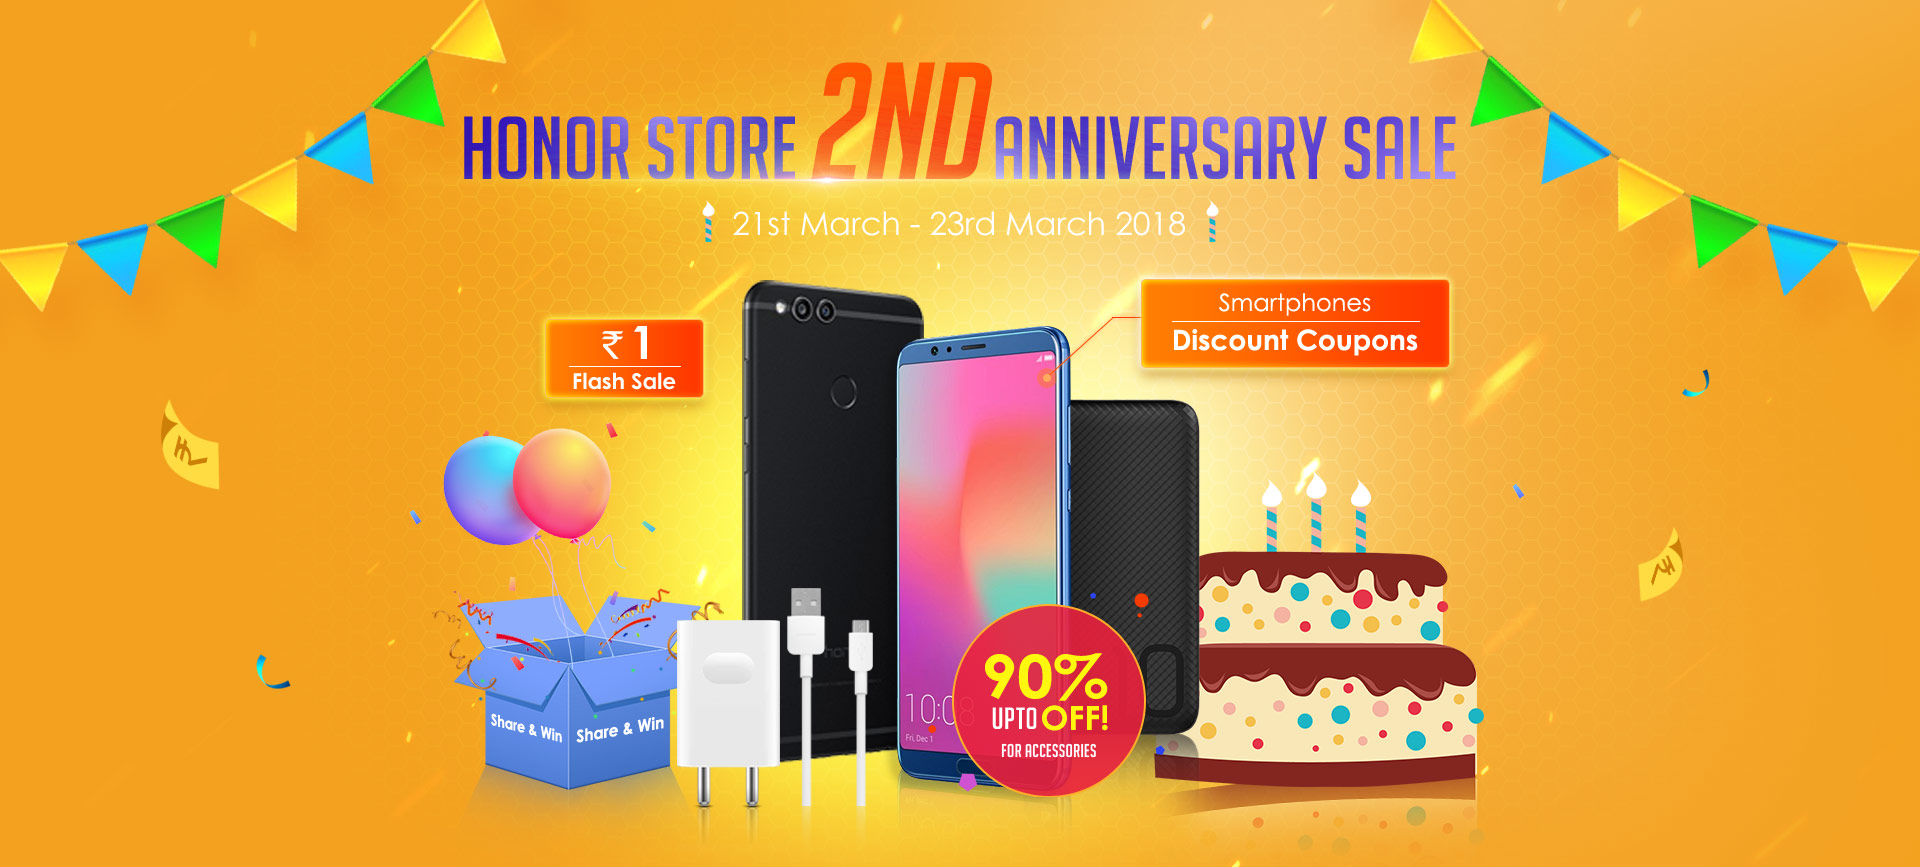 Honor Flash Sale - Rs. 1 Sale and Honor Smartphone in Best Price